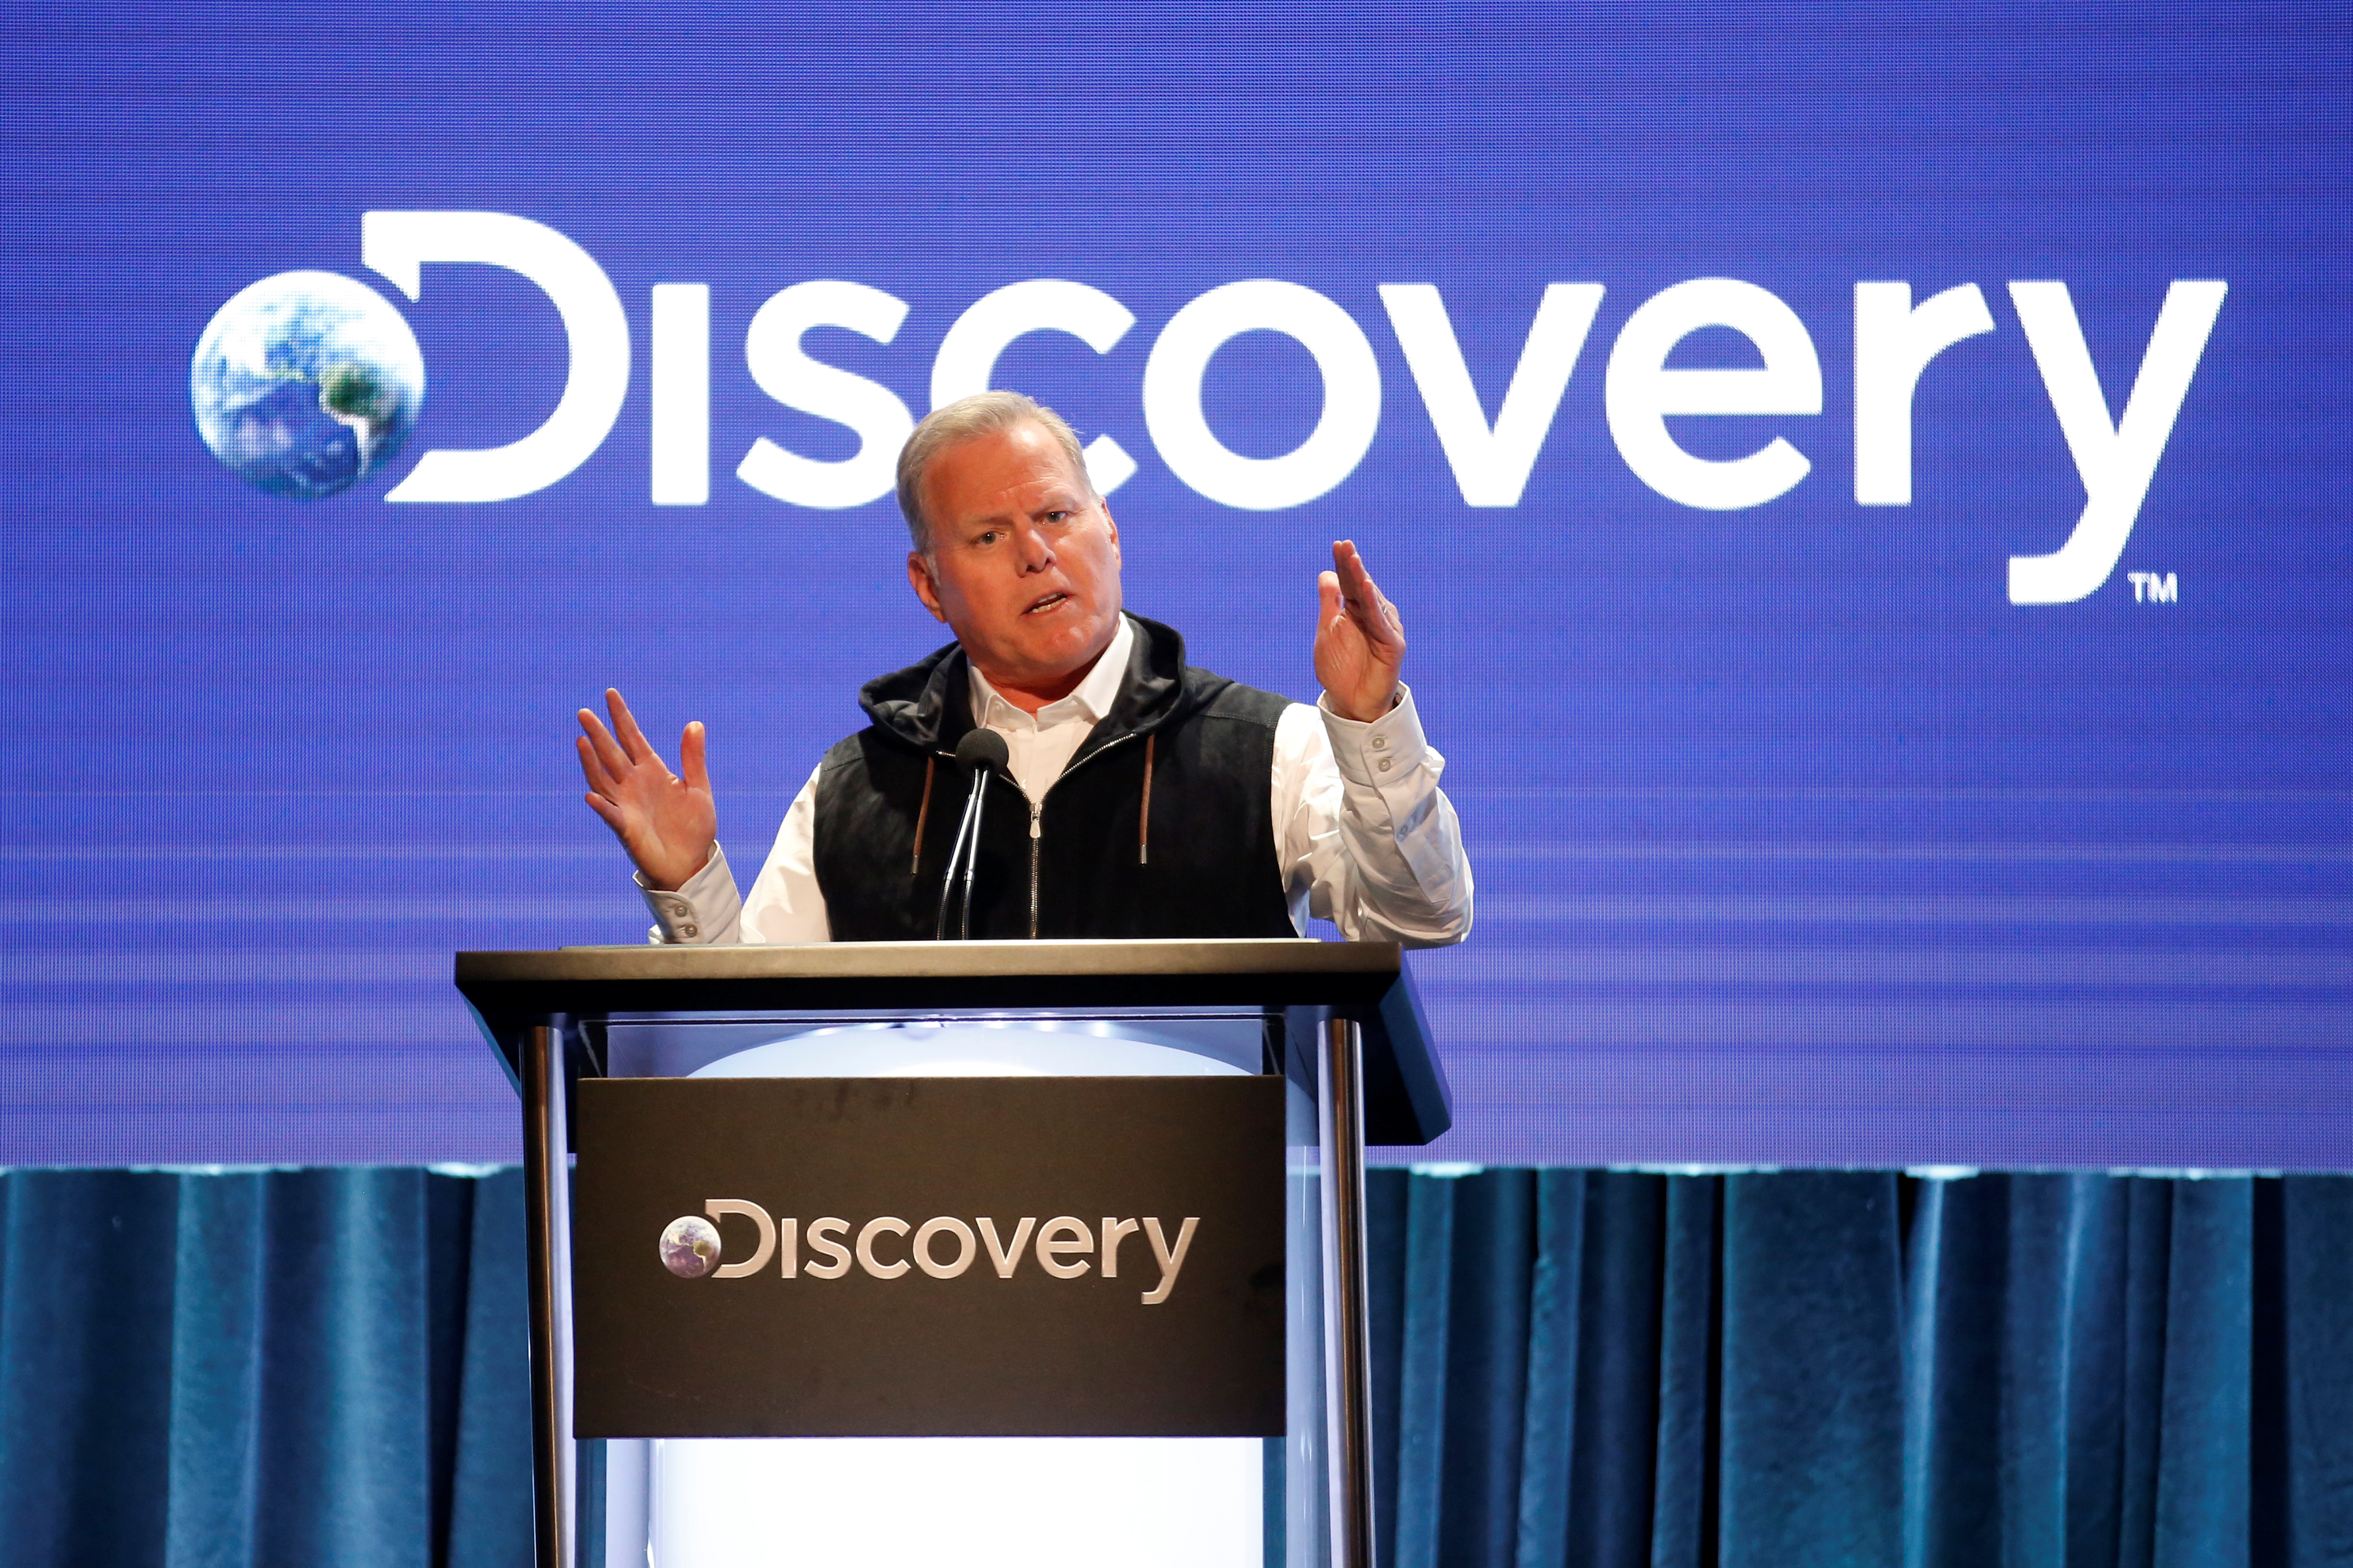 President and CEO of Discovery David Zaslav speaks during the Discovery portion of the Television Critics Association (TCA) Summer Press Tour in Beverly Hills, California, U.S., July 25, 2019. REUTERS/Danny Moloshok